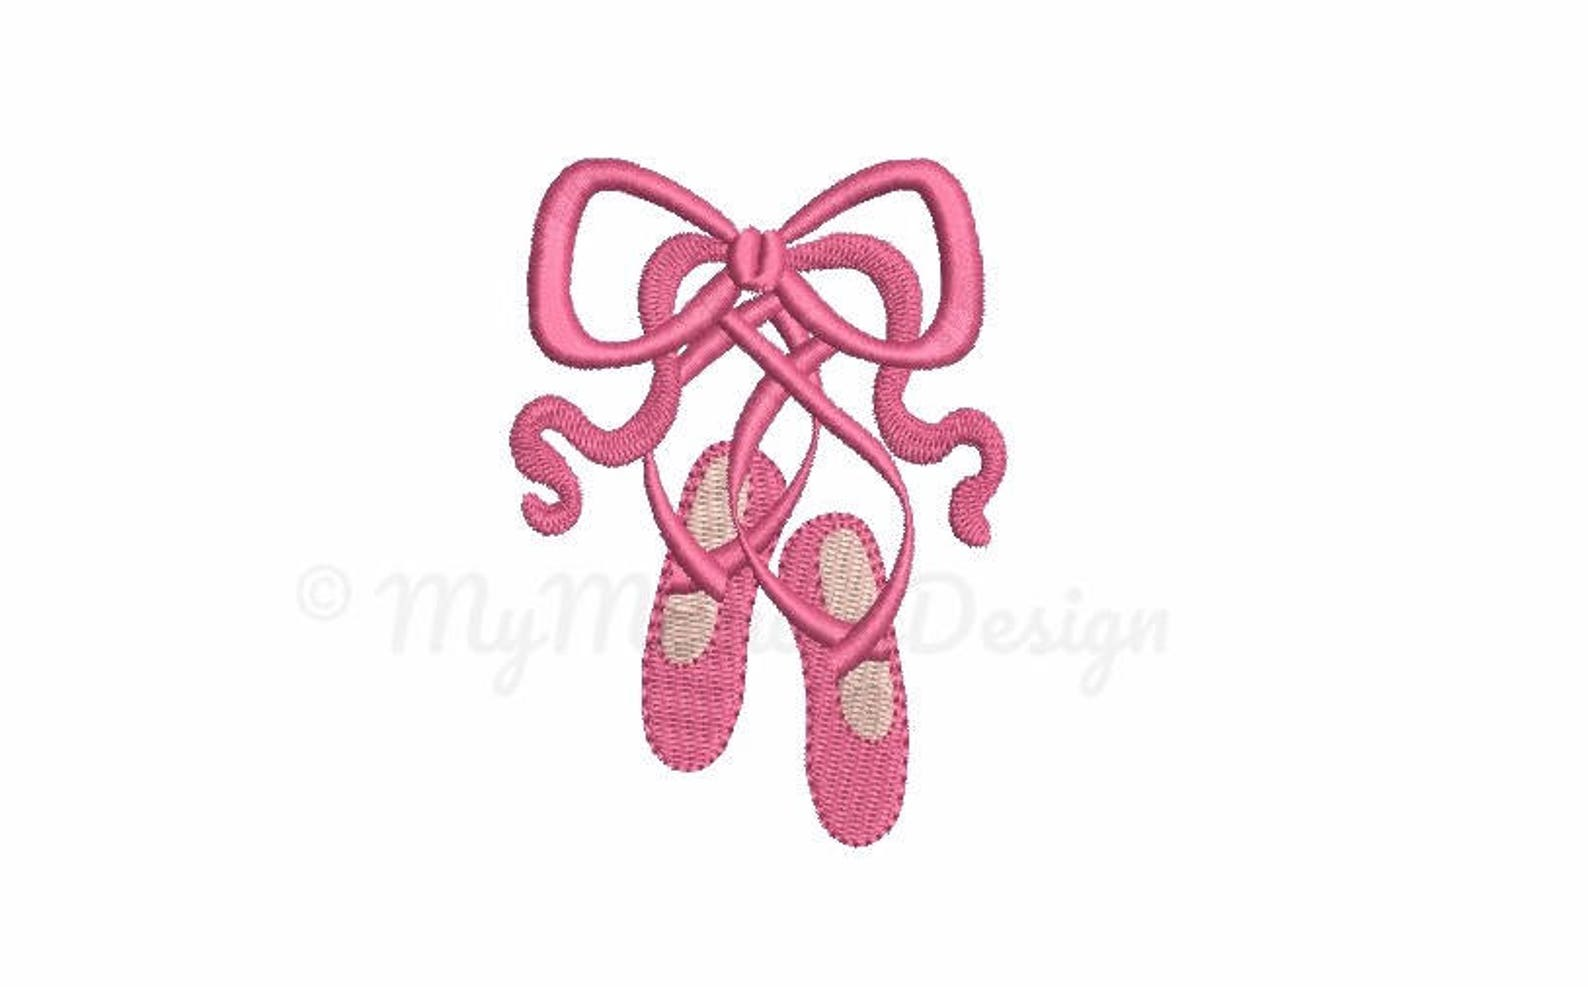 ballet embroidery design - ballet shoes embroidery - machine embroidery - digital file - instant download pes hus jef vip vp3 xx